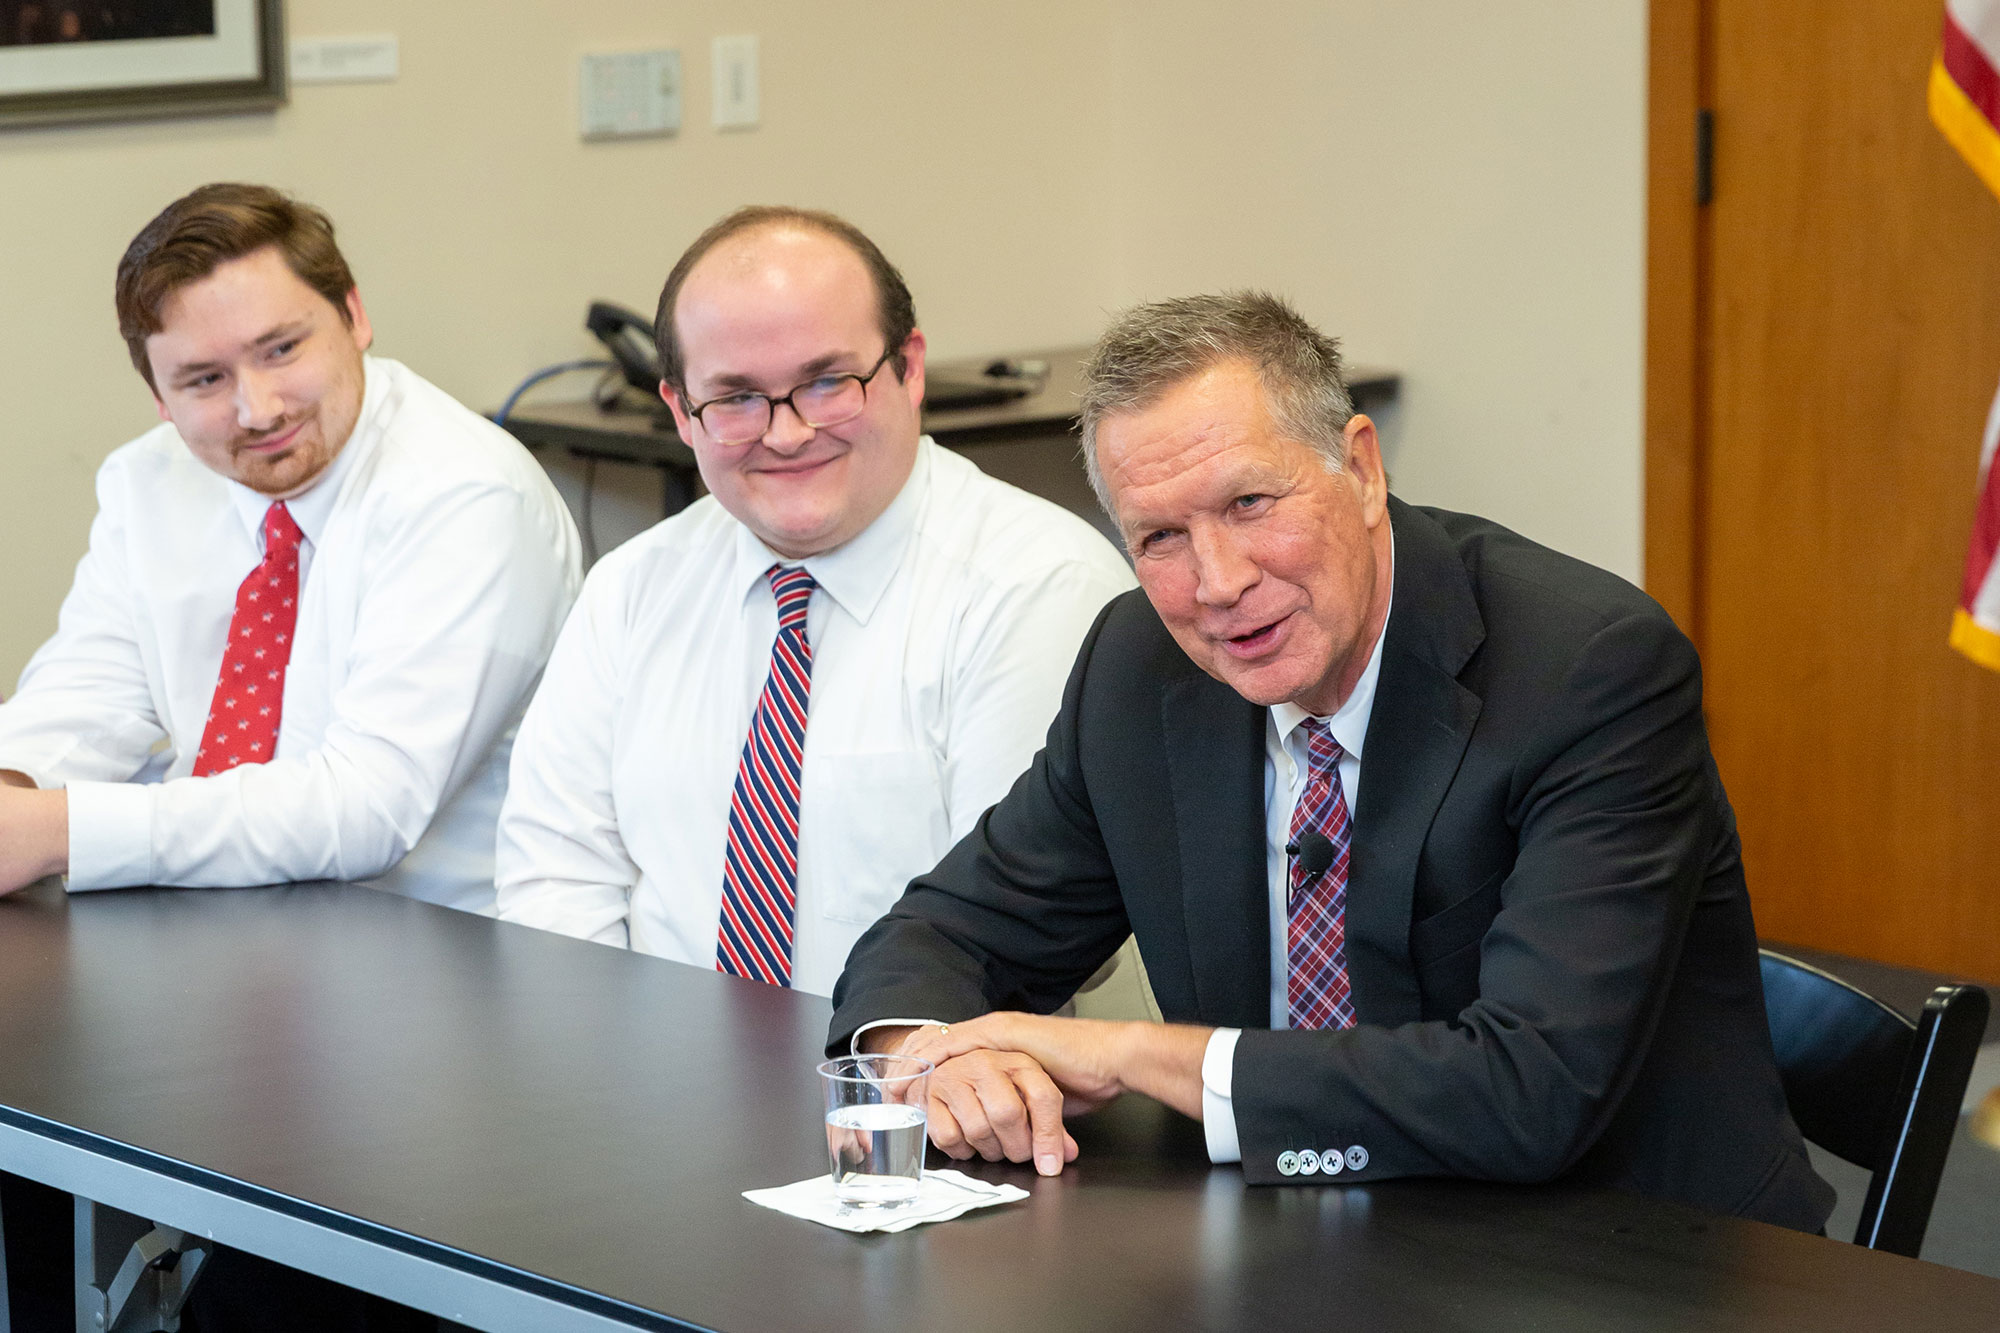 John Kasich with students